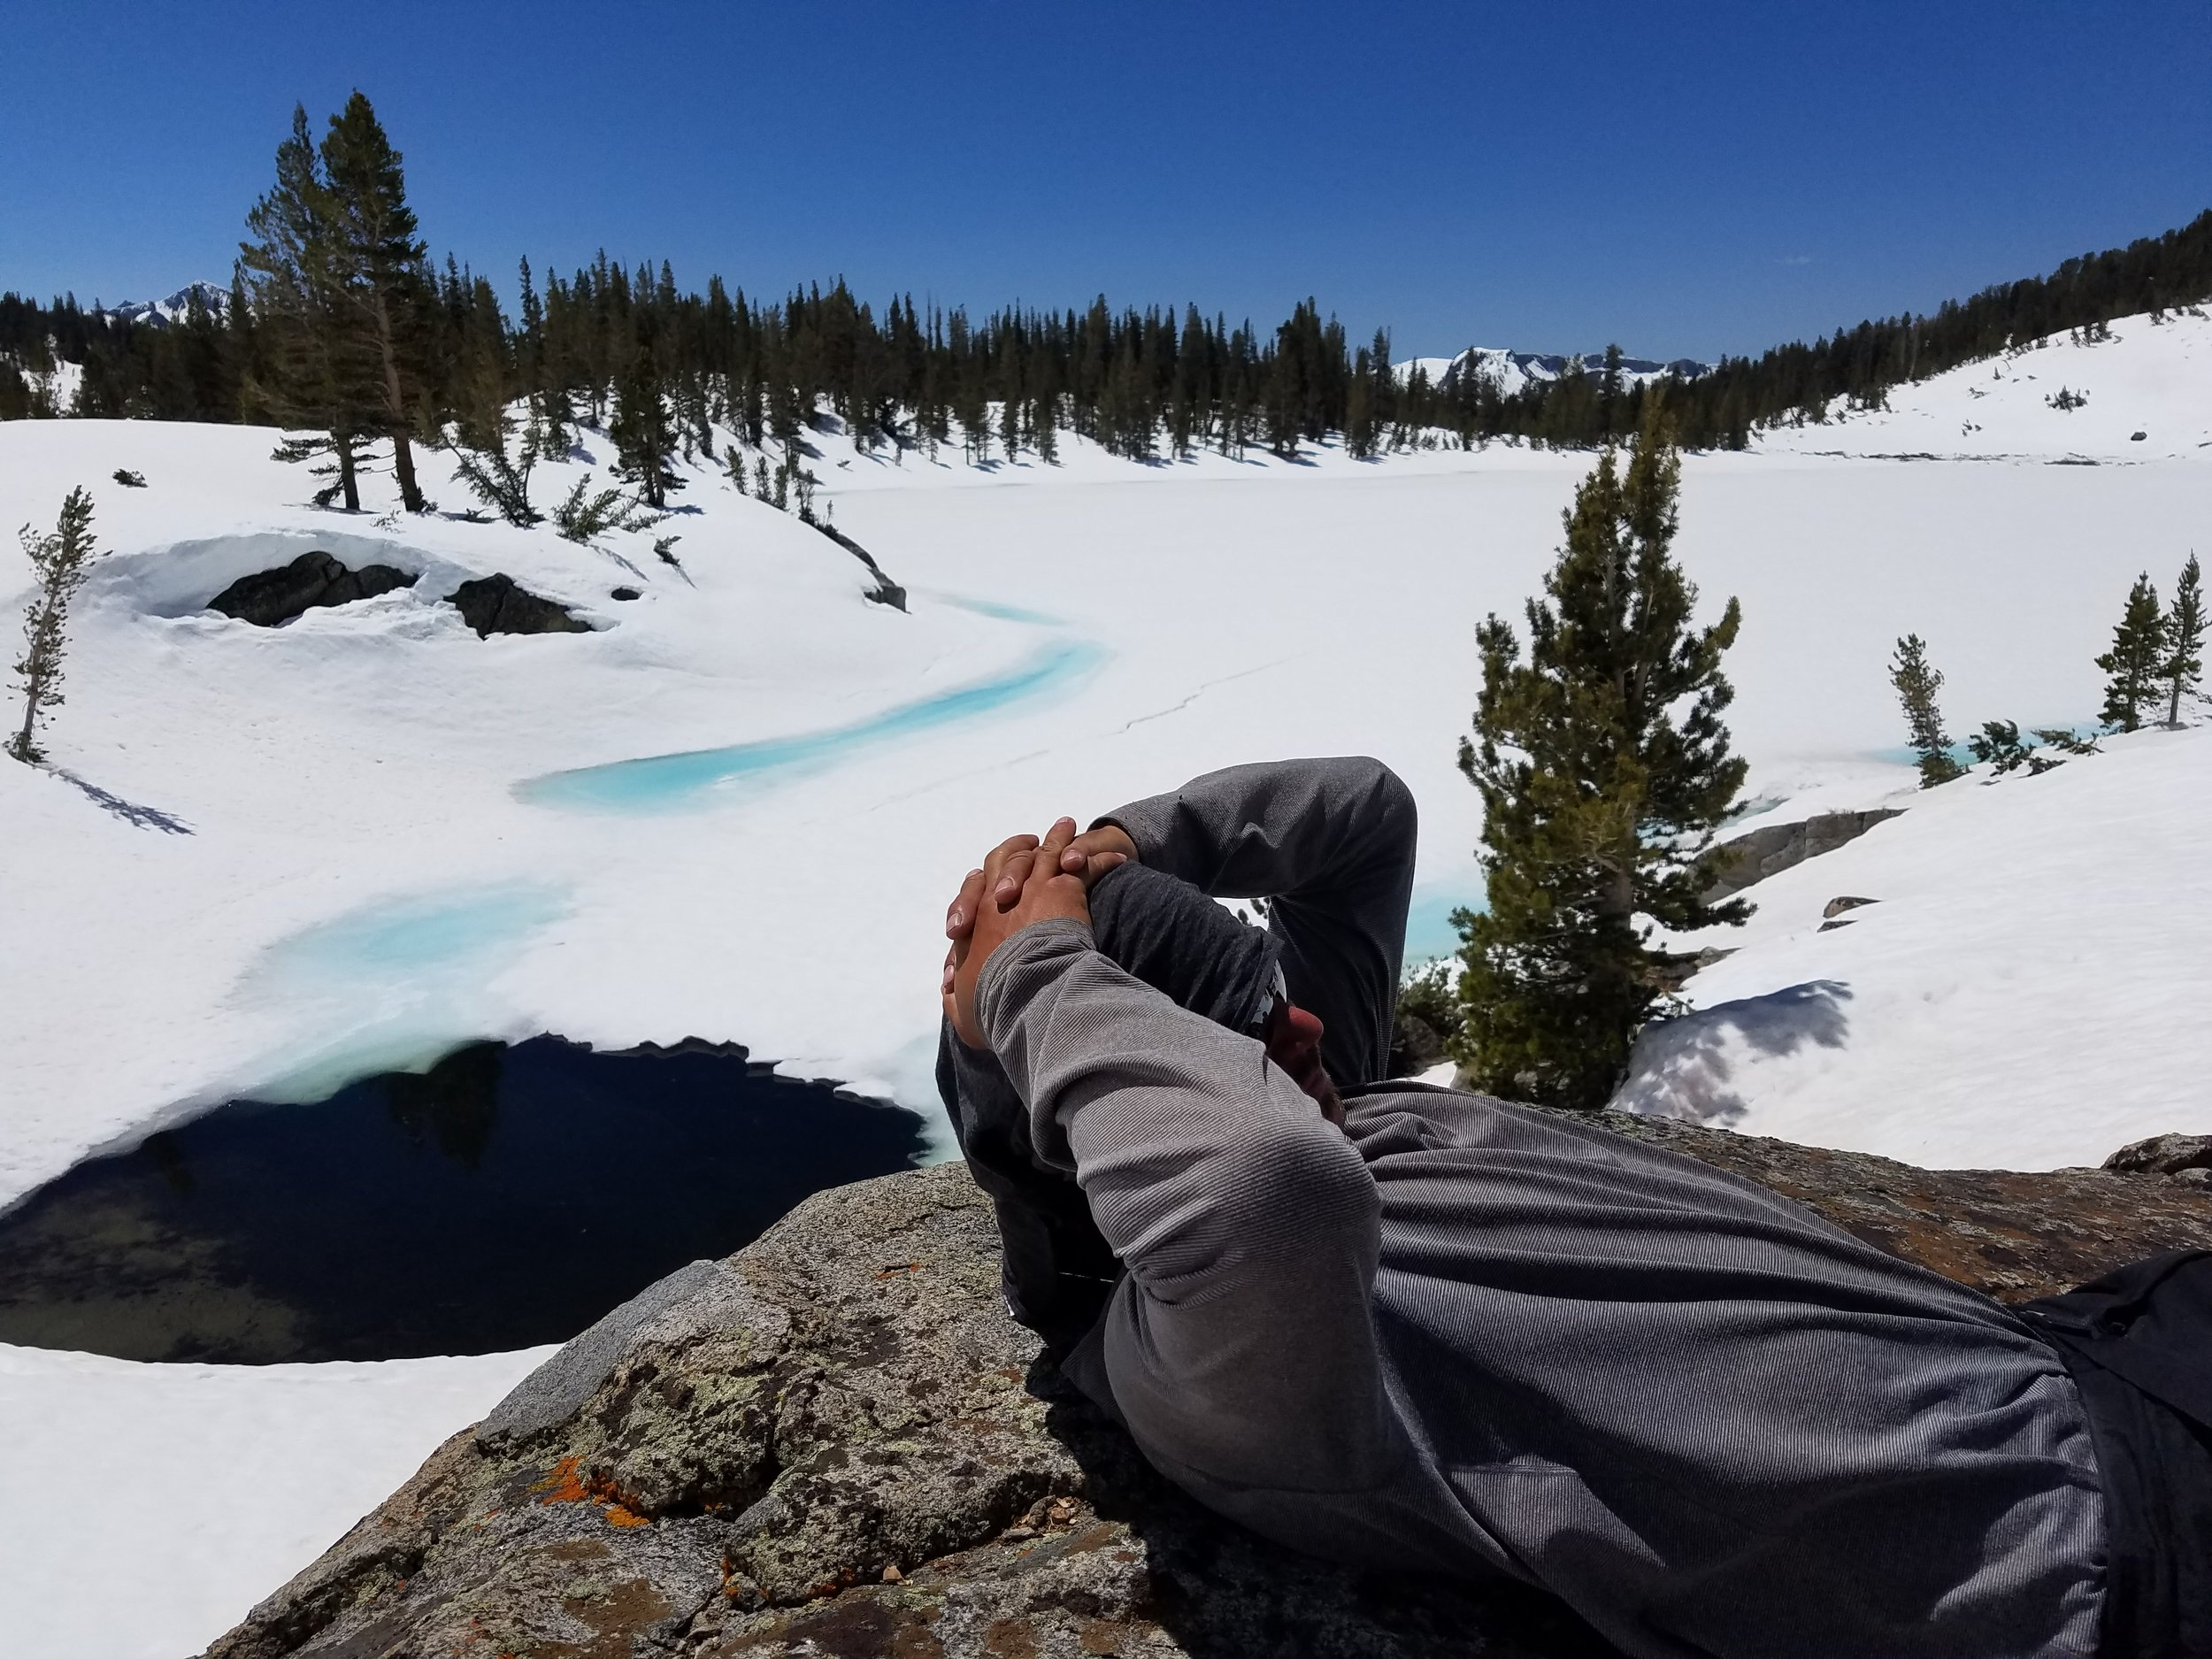 May 2017 - Amped relaxes with Sallie Keyes Lake in the background.